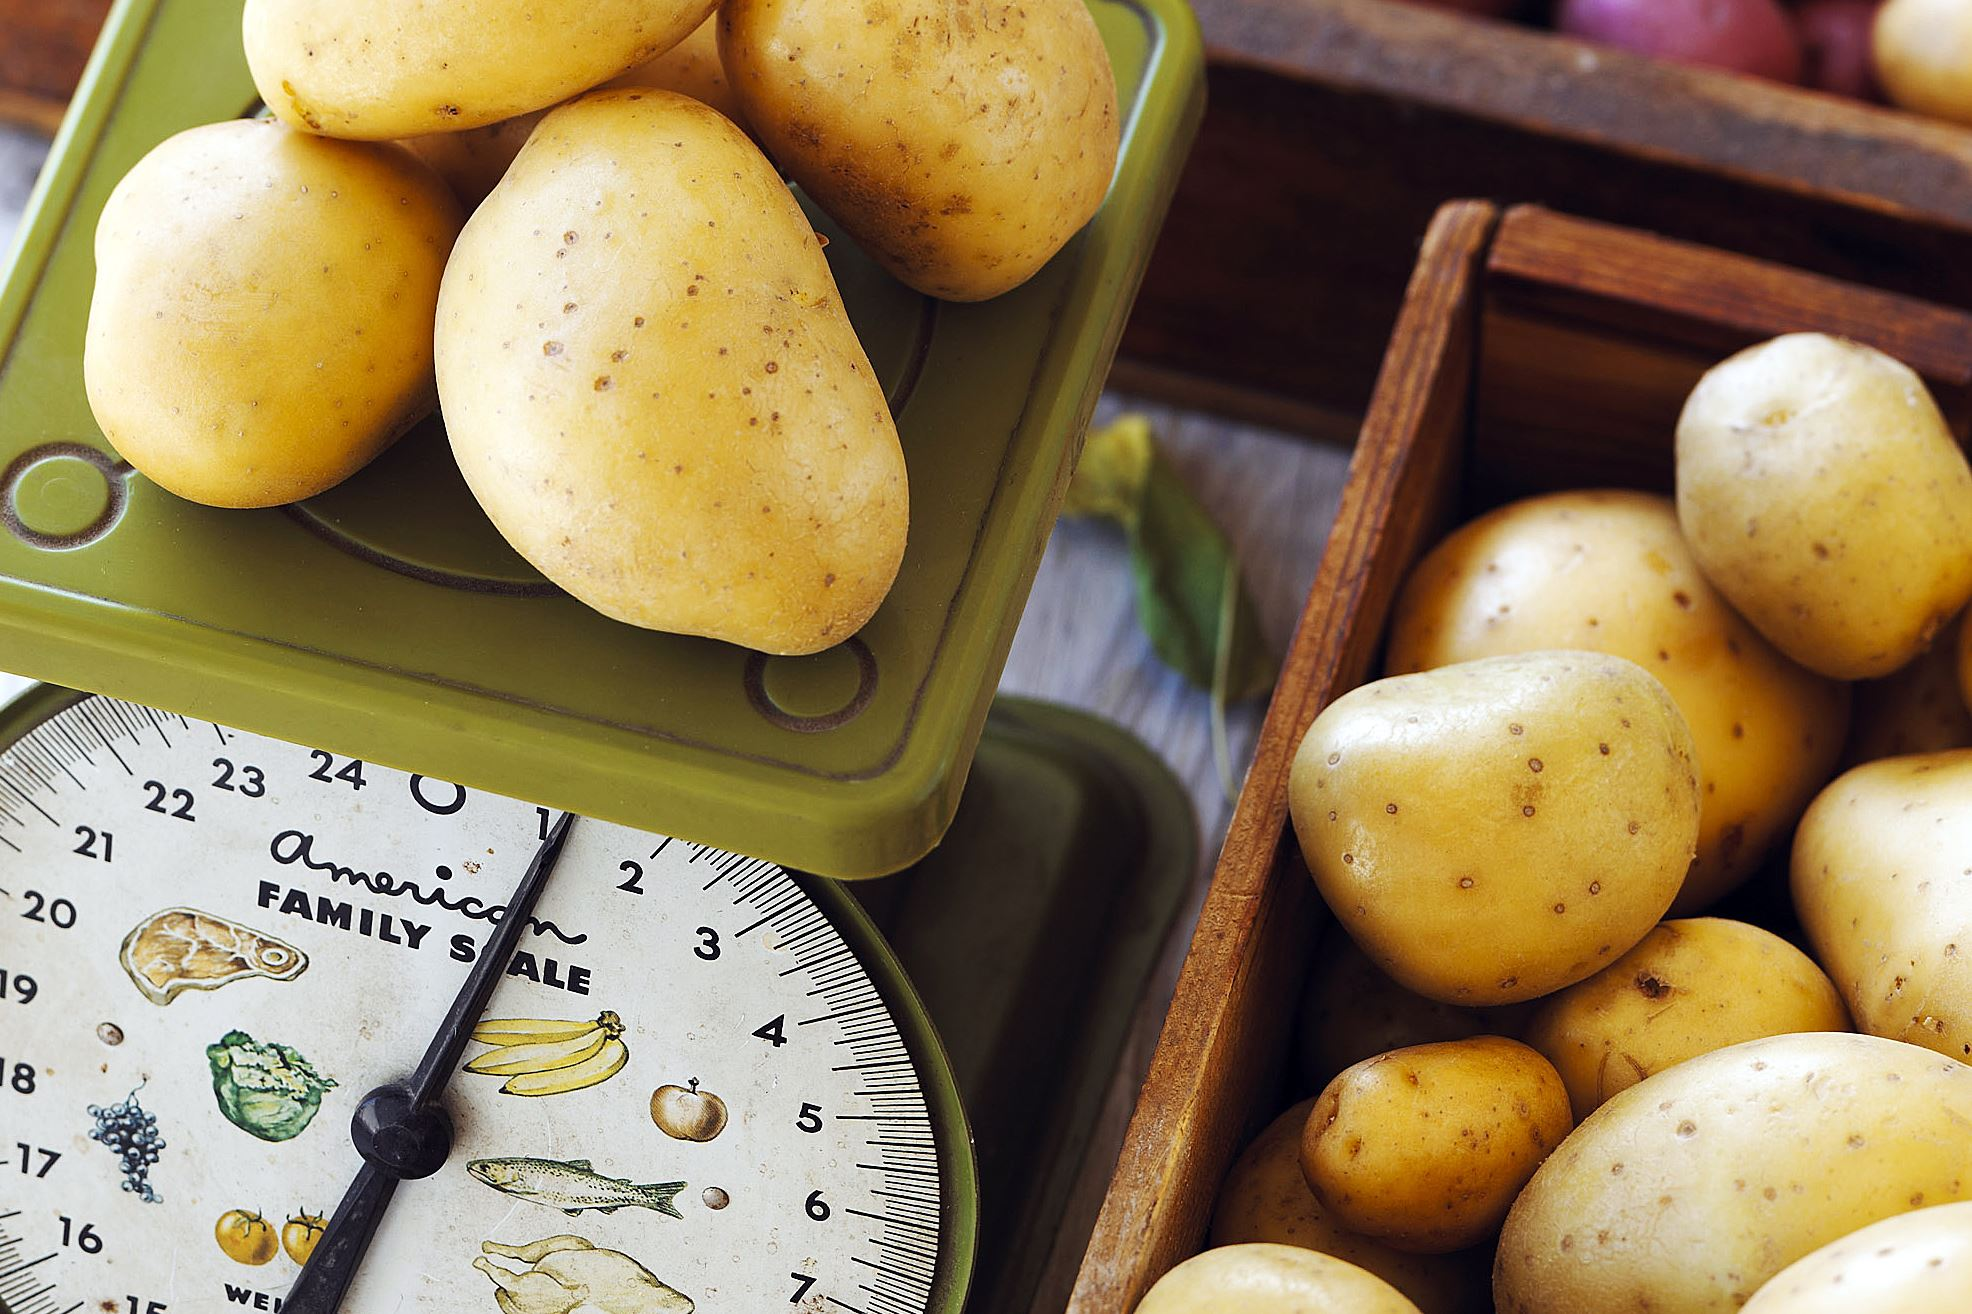 yellow potatoes-6 Yellow potatoes are round or oblong in shape, and slightly waxy, creamy and moist in texture.